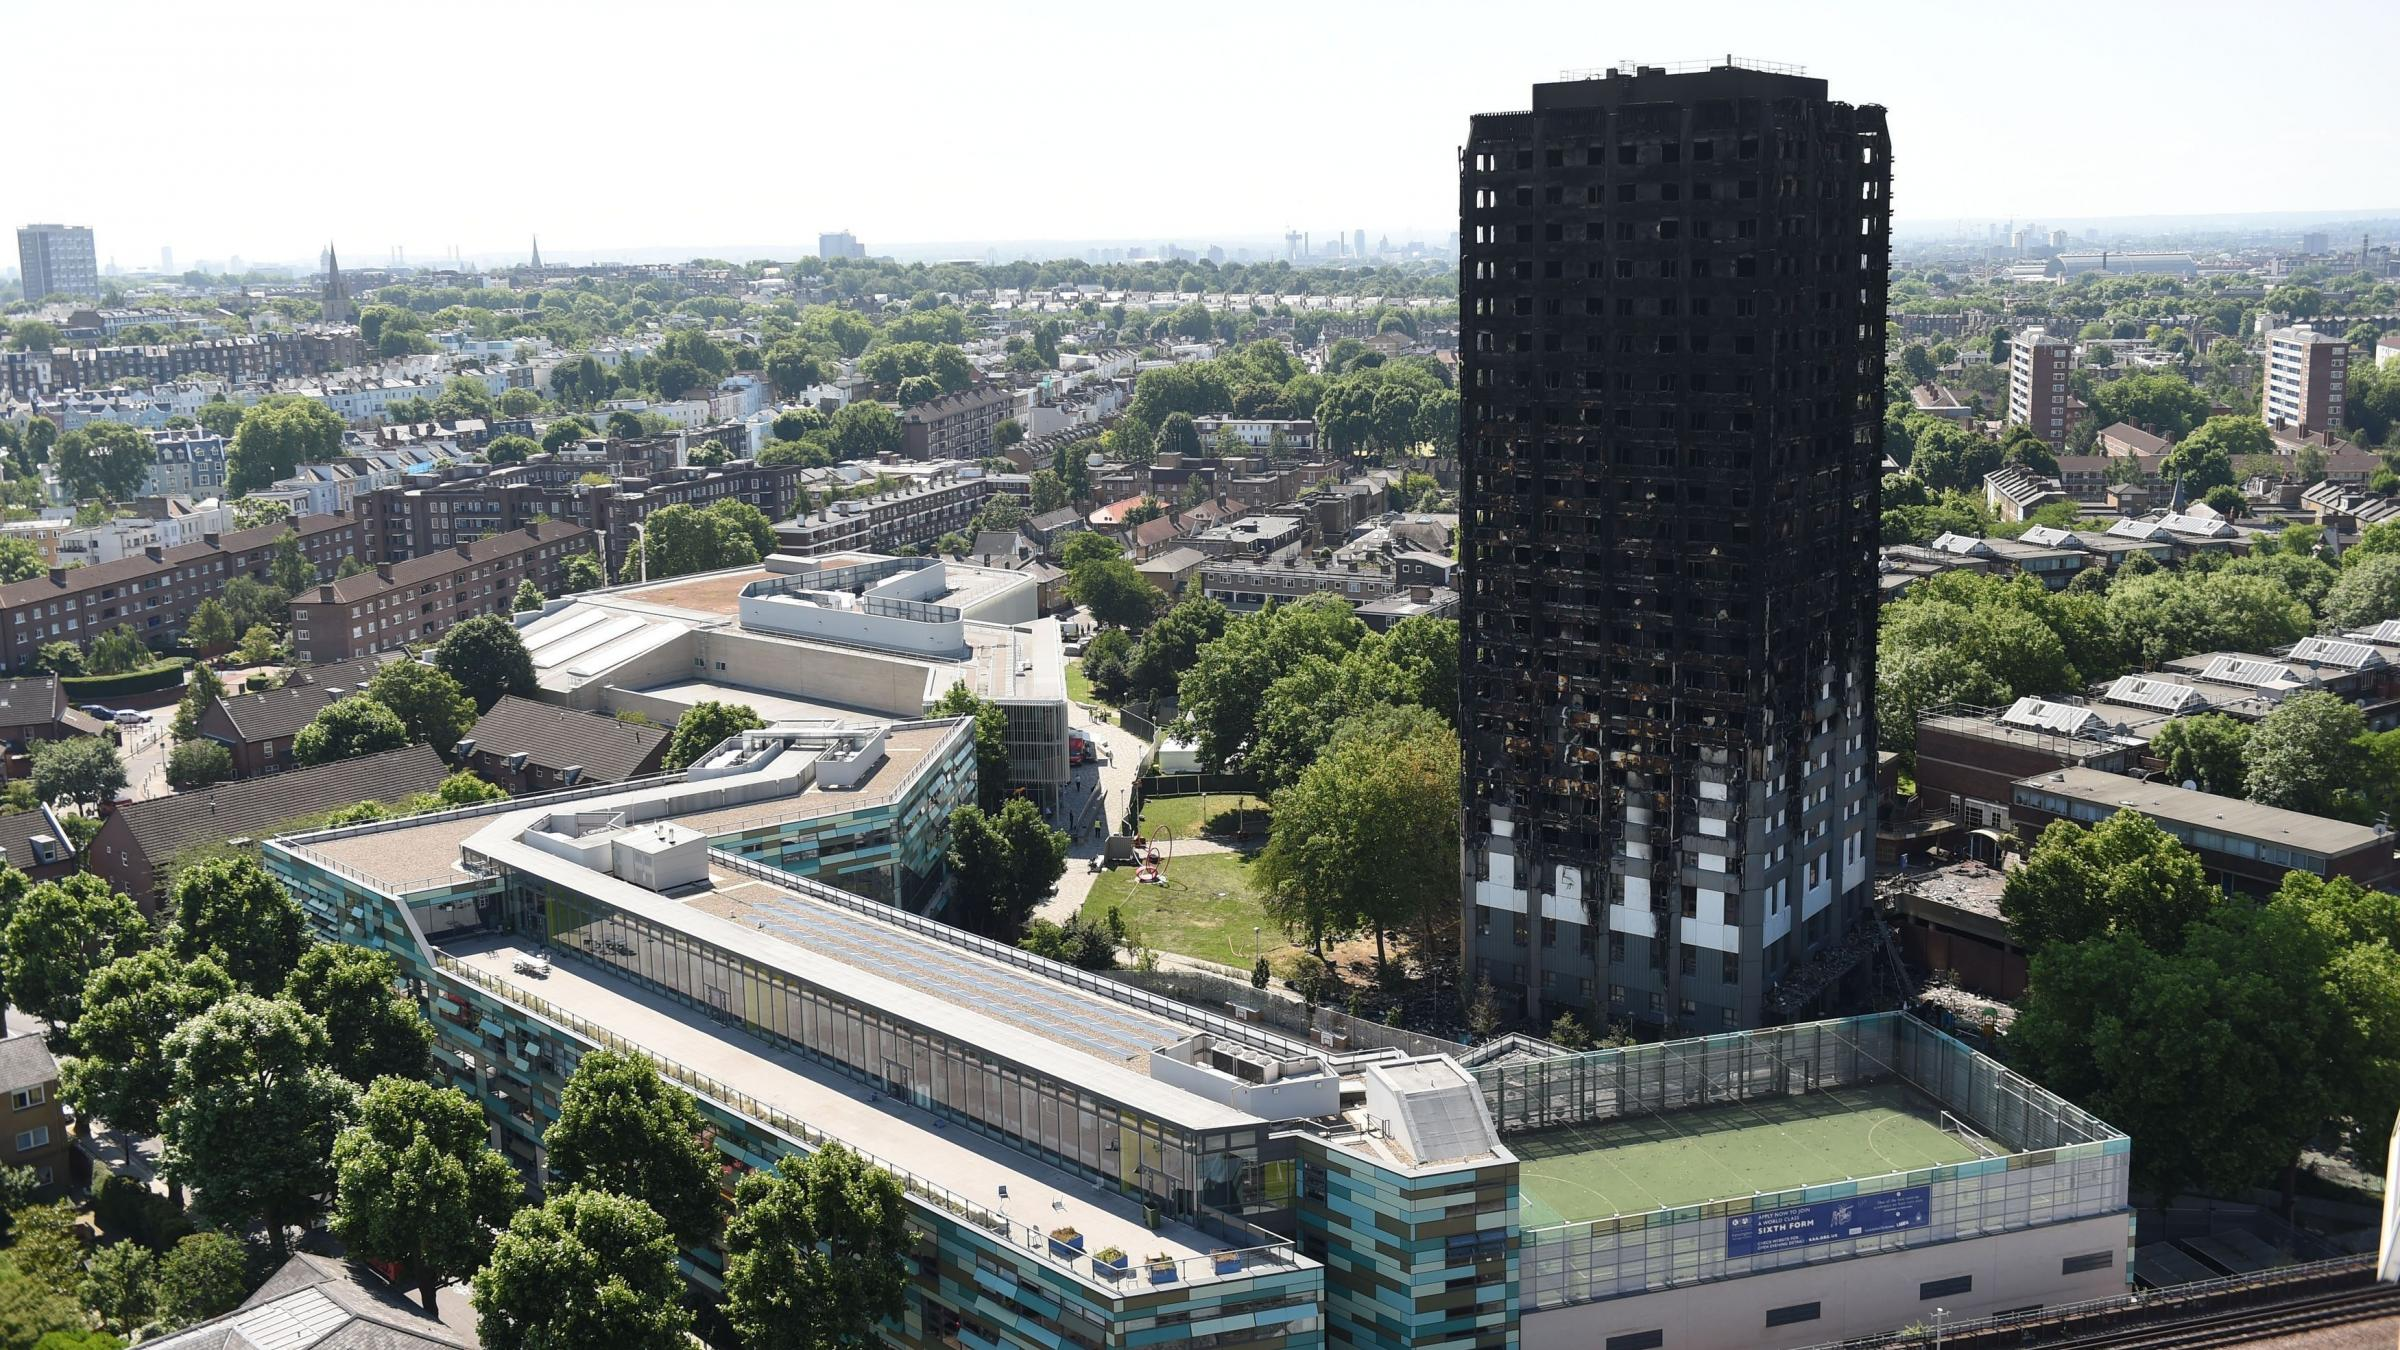 79 people presumed dead in London tower fire